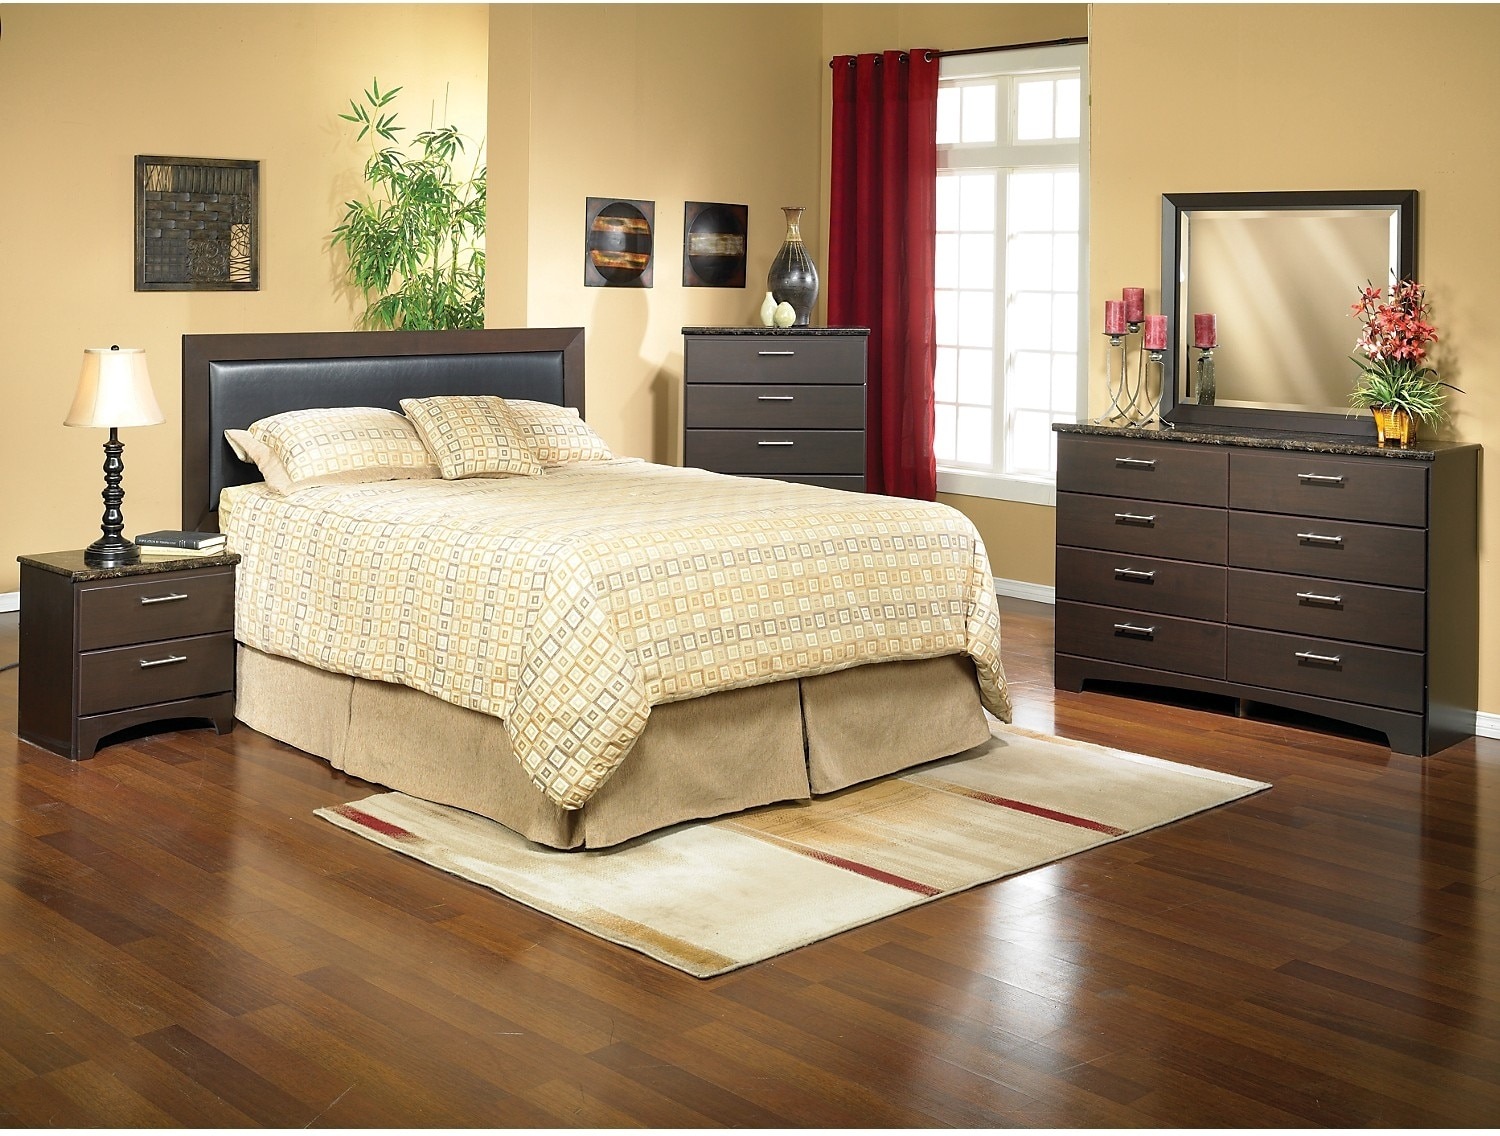 Bedroom Furniture - Oxford 6-Piece Queen Bedroom Package